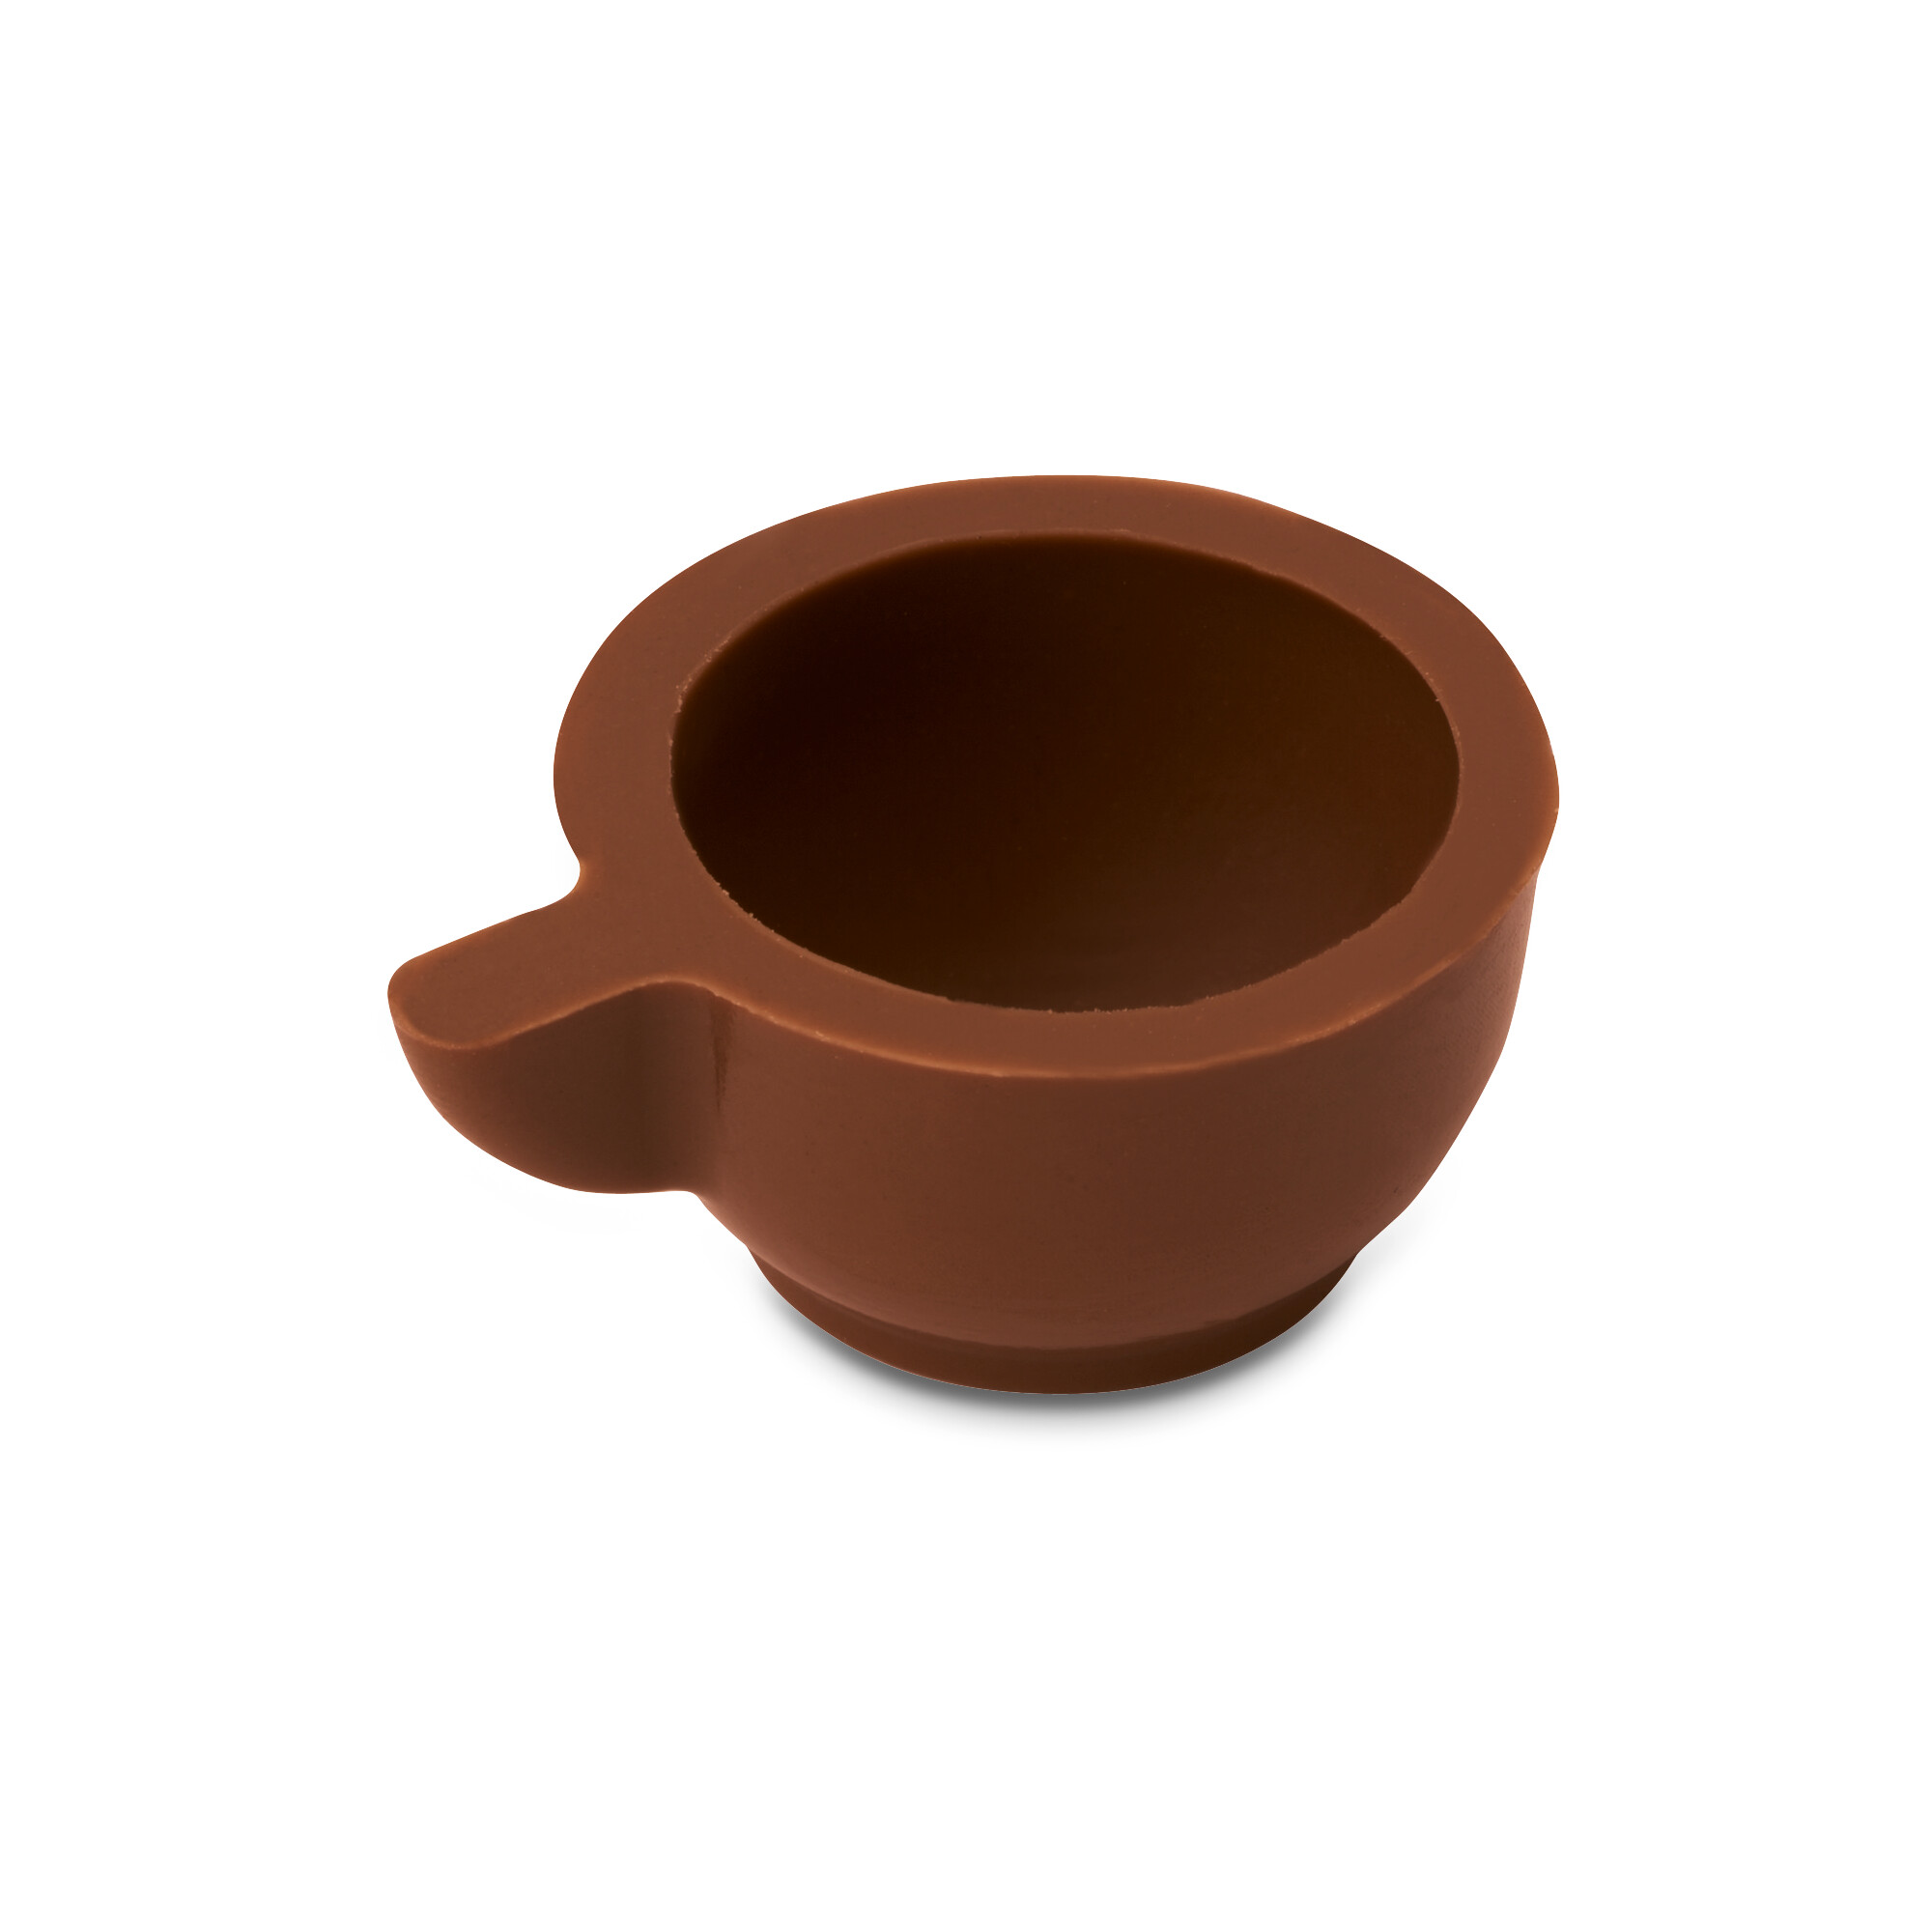 Chocolate hollow bodies - Cup - Whole milk chocolate - 54 pieces